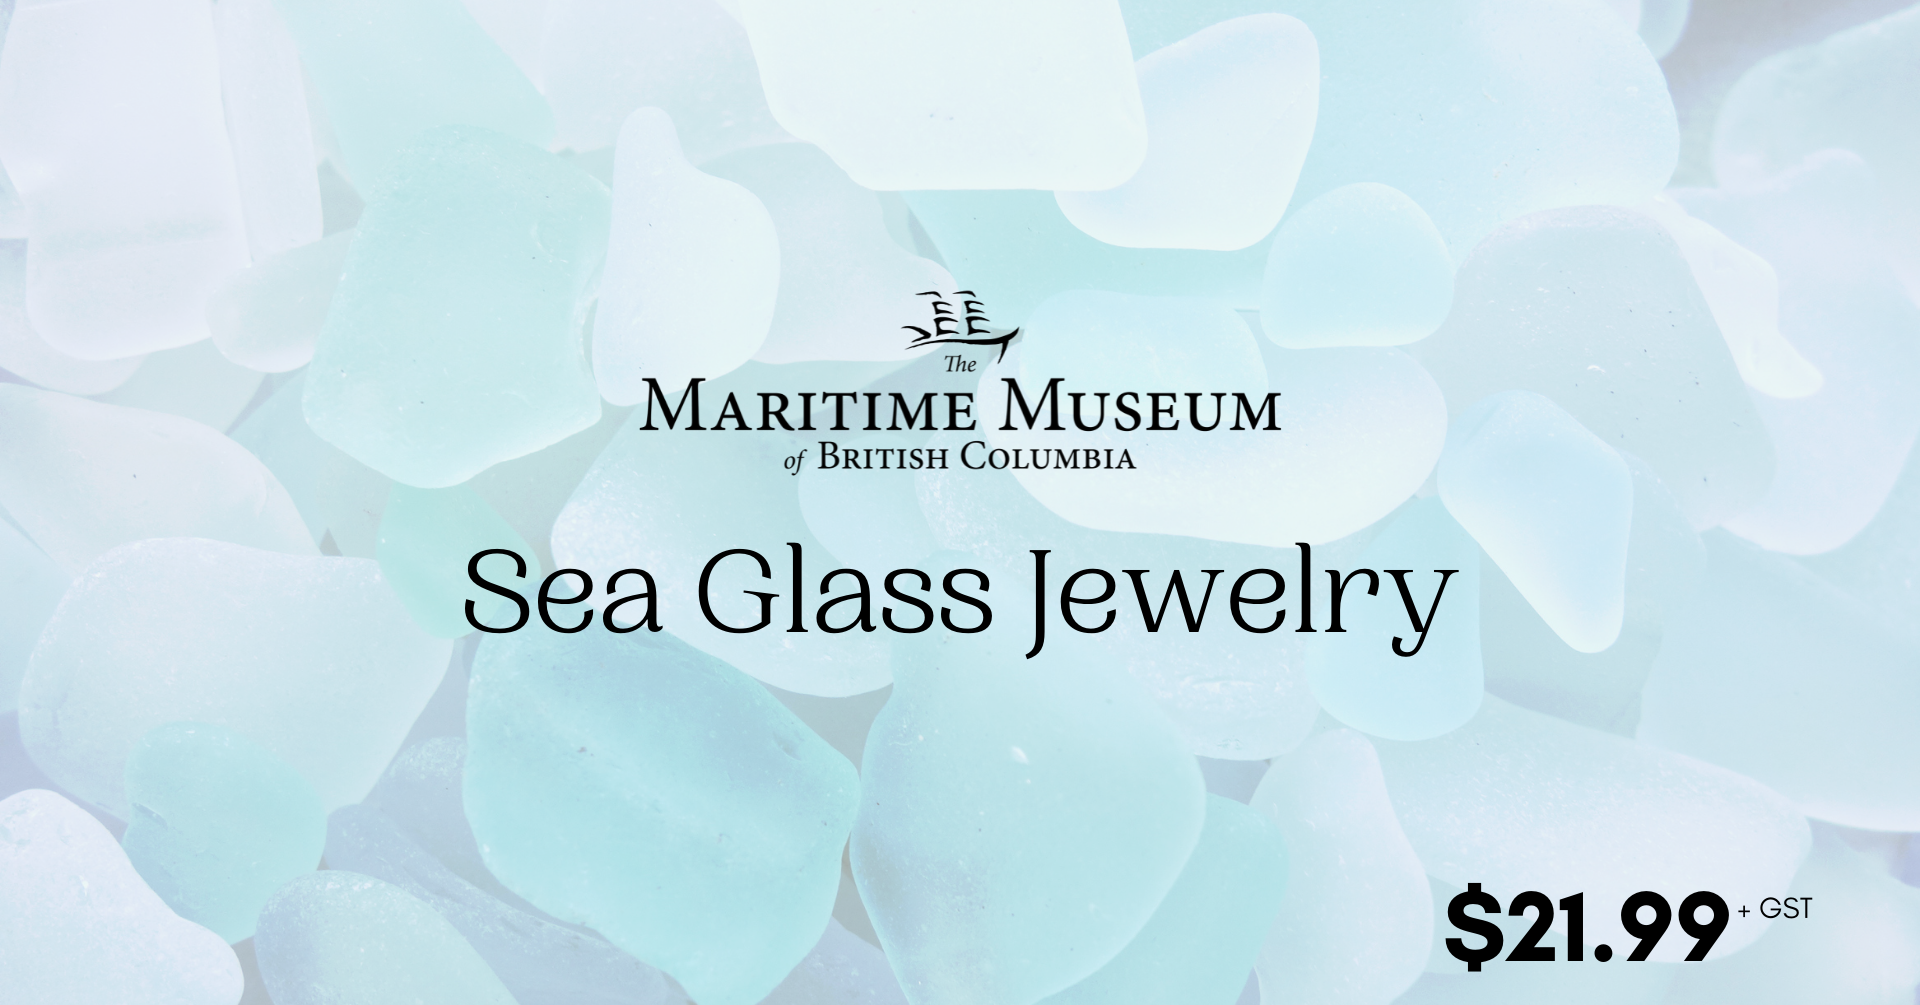 The words Sea Glass Jewelry in black on a background of sea glass. The Maritime Museum of BC logo is top centre.